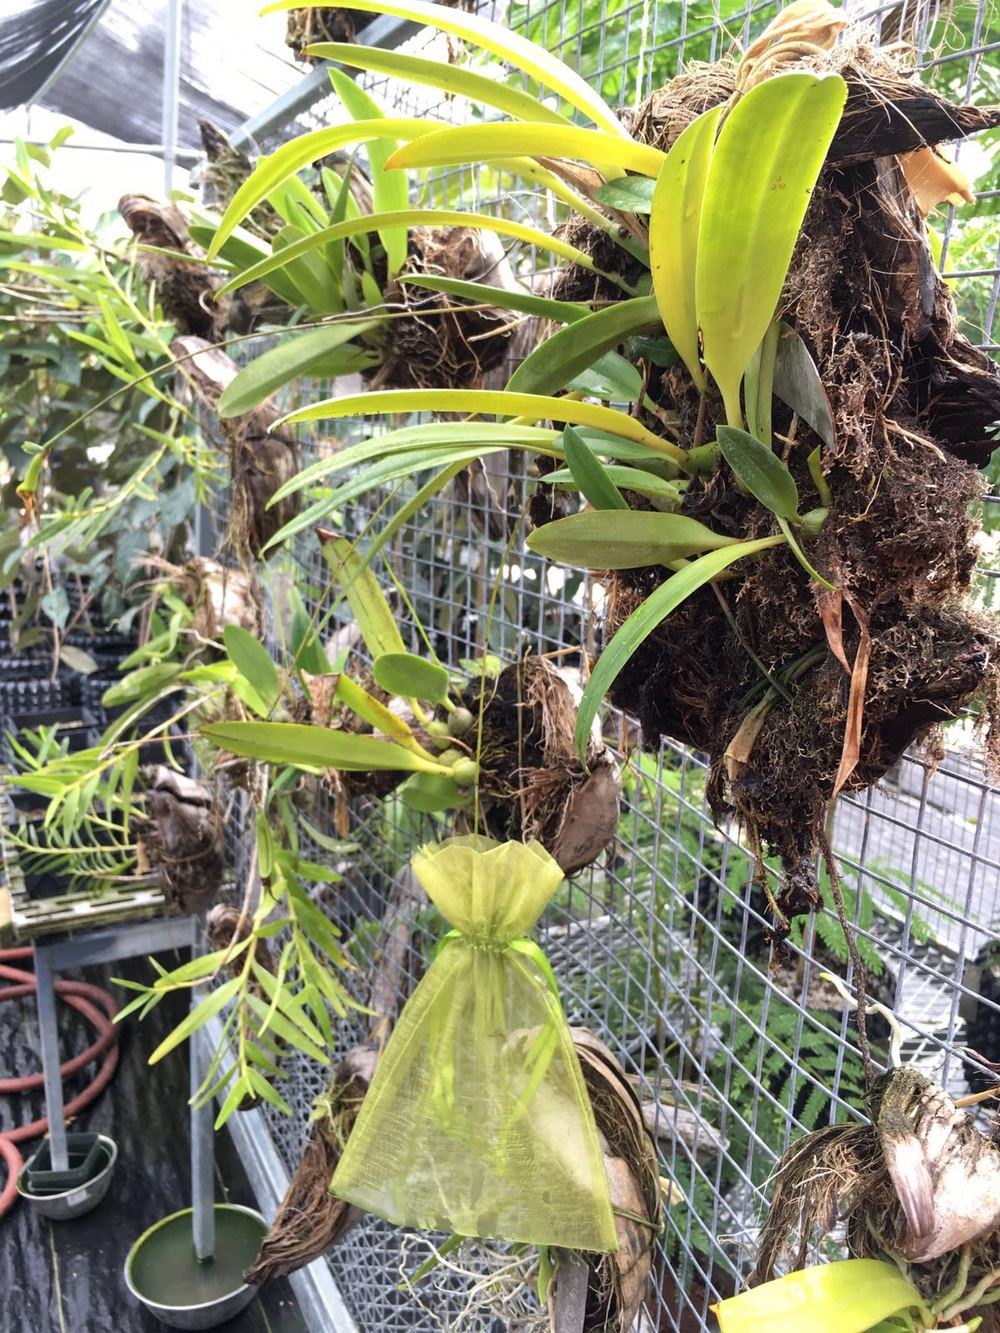 Bulbophyllum guamense  along with its seed pod being carefully monitored in the nursery